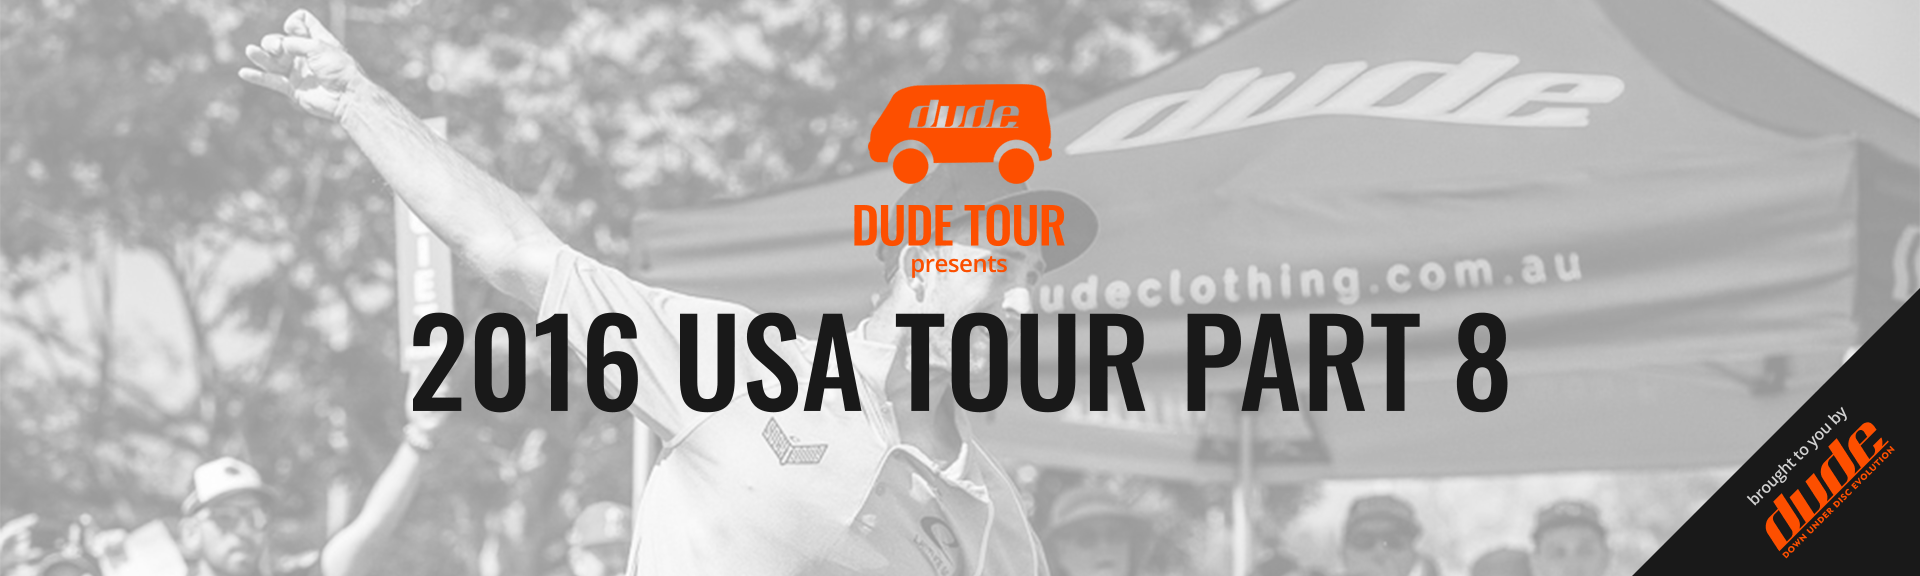 Dude Tour - 2016 USA Tour - PART 8